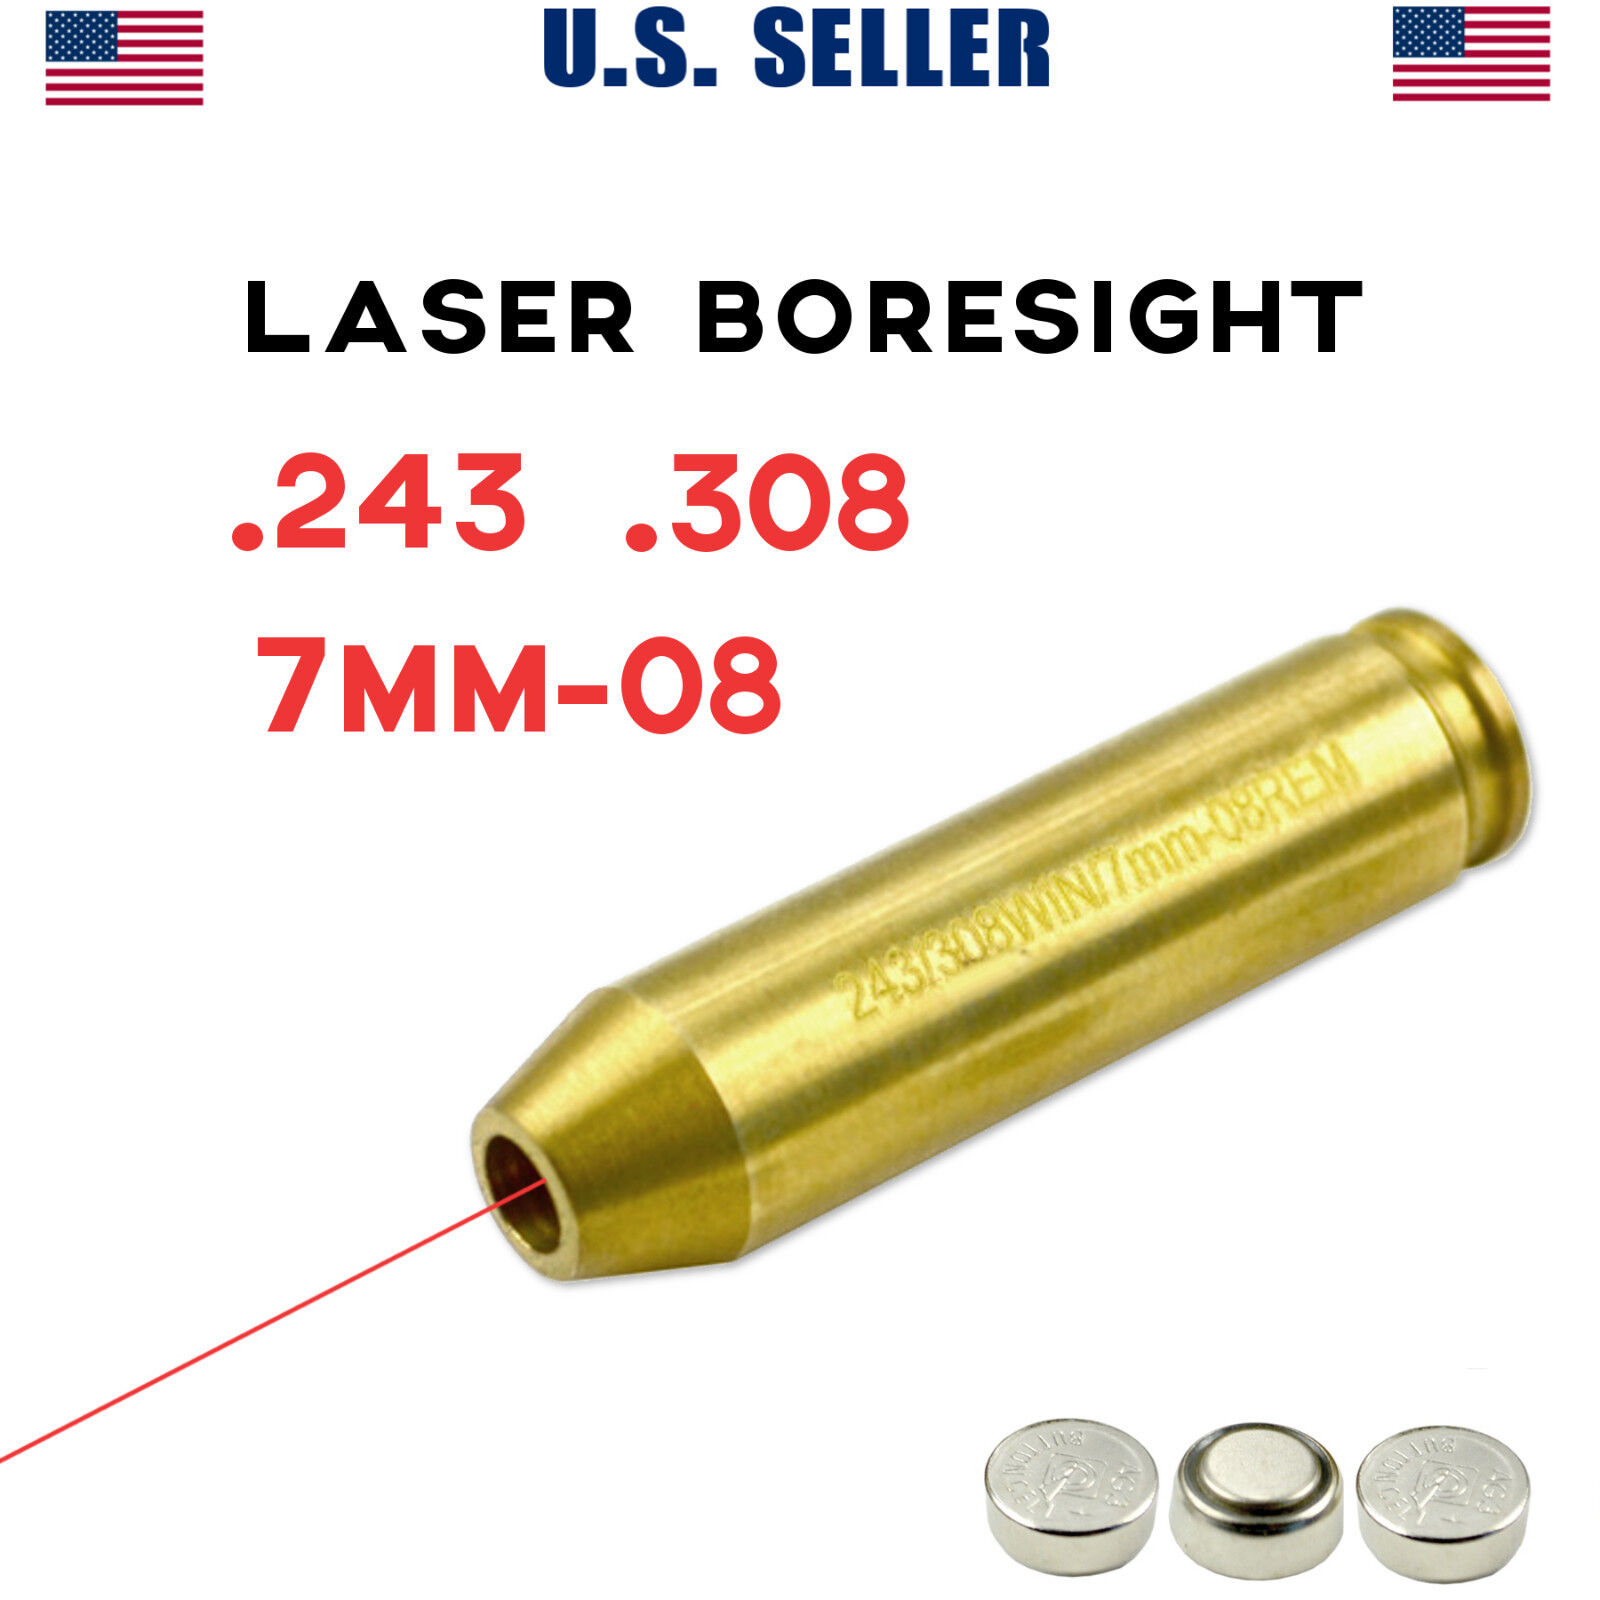 Details about  243  308 7mm-08 Rem LASER BORESIGHT For Zeroing In Rifle Gun  Scope Bore Sight